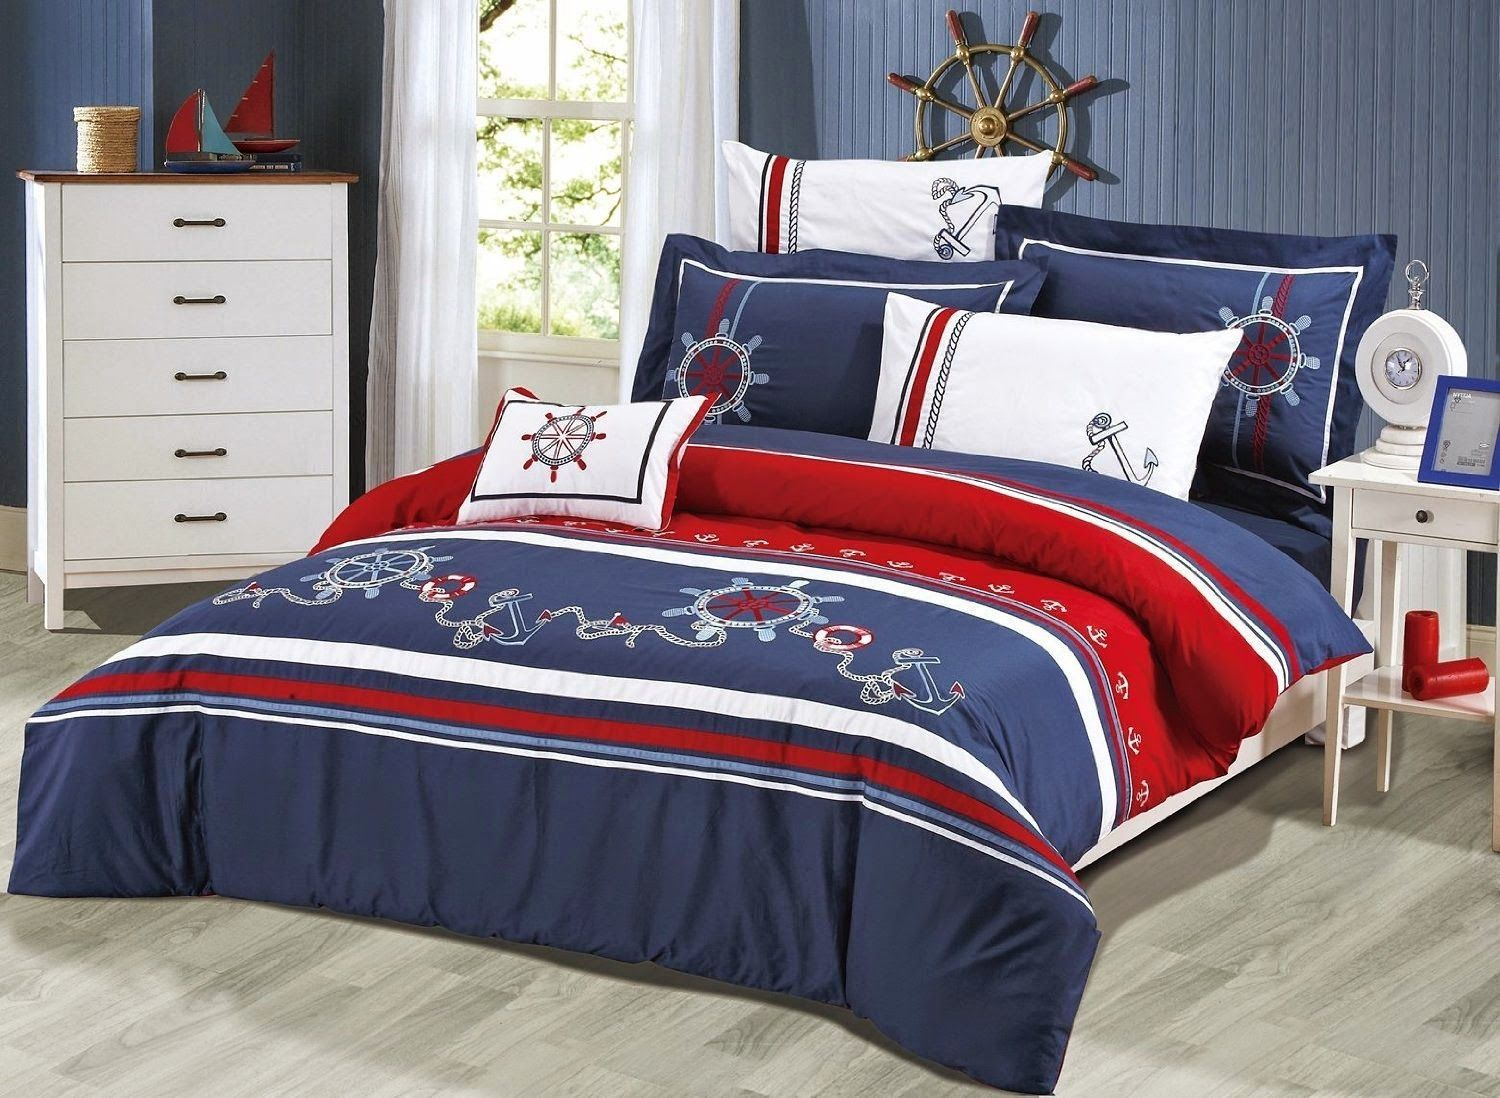 bedroom decor ideas and designs: top nautical sailor themed